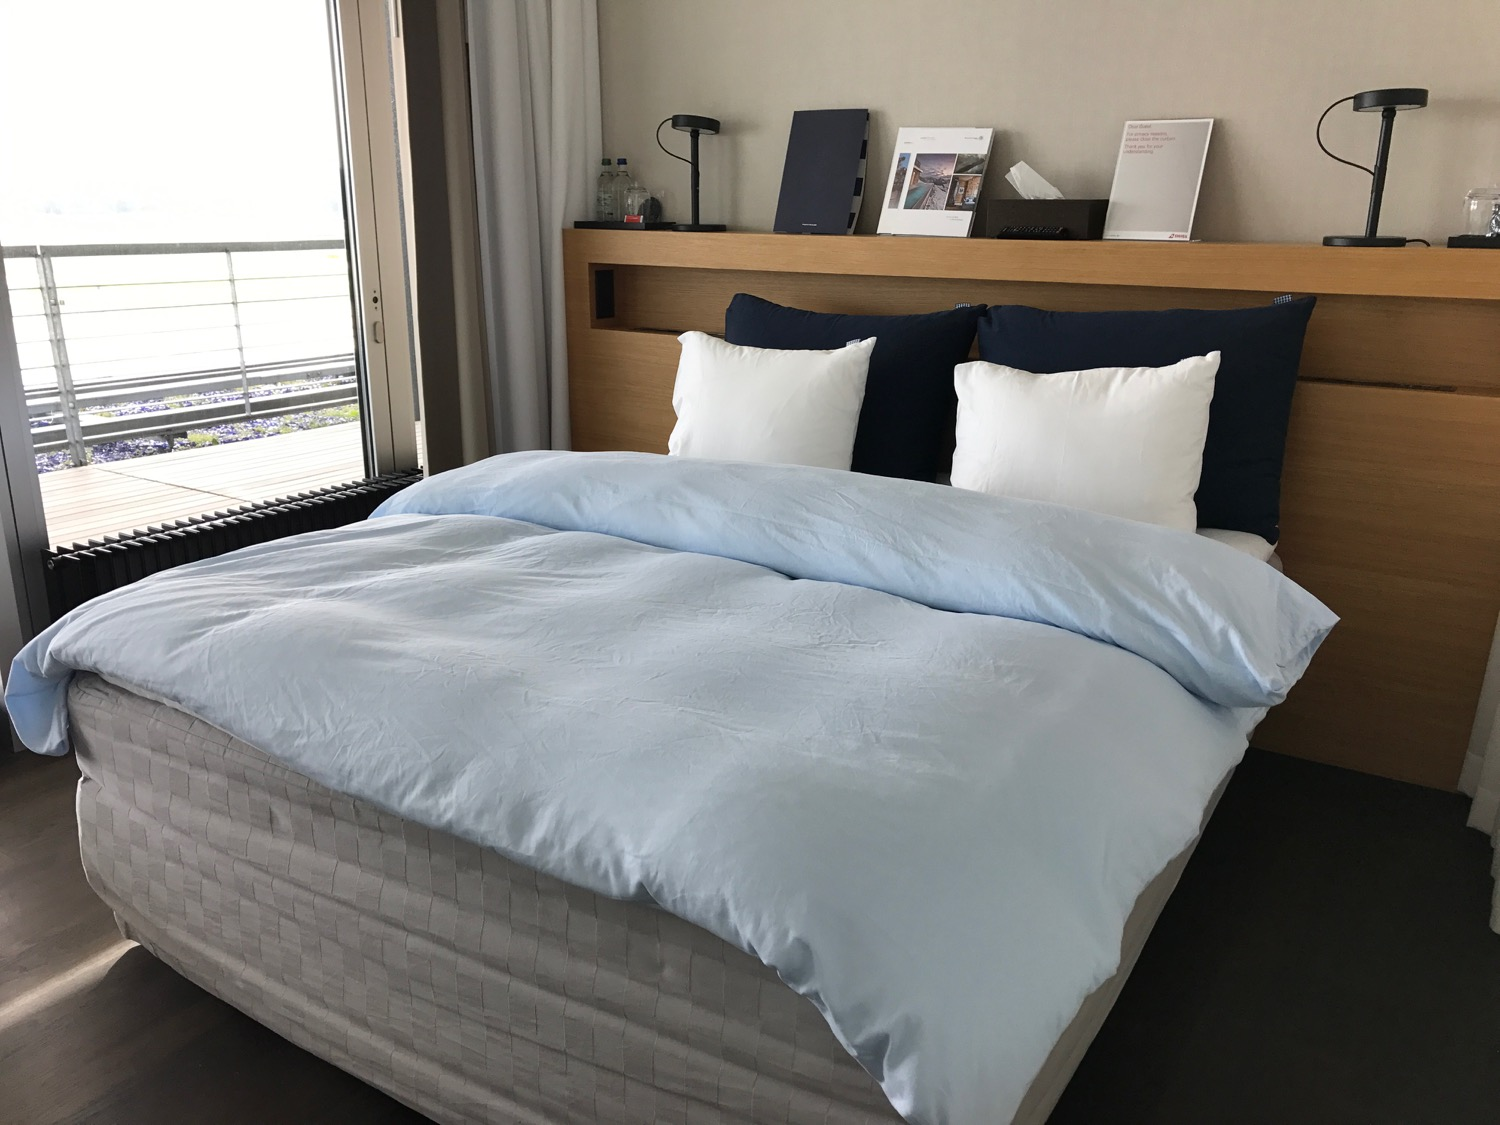 The Most Comfortable Bed Ive Ever Slept inwas in an